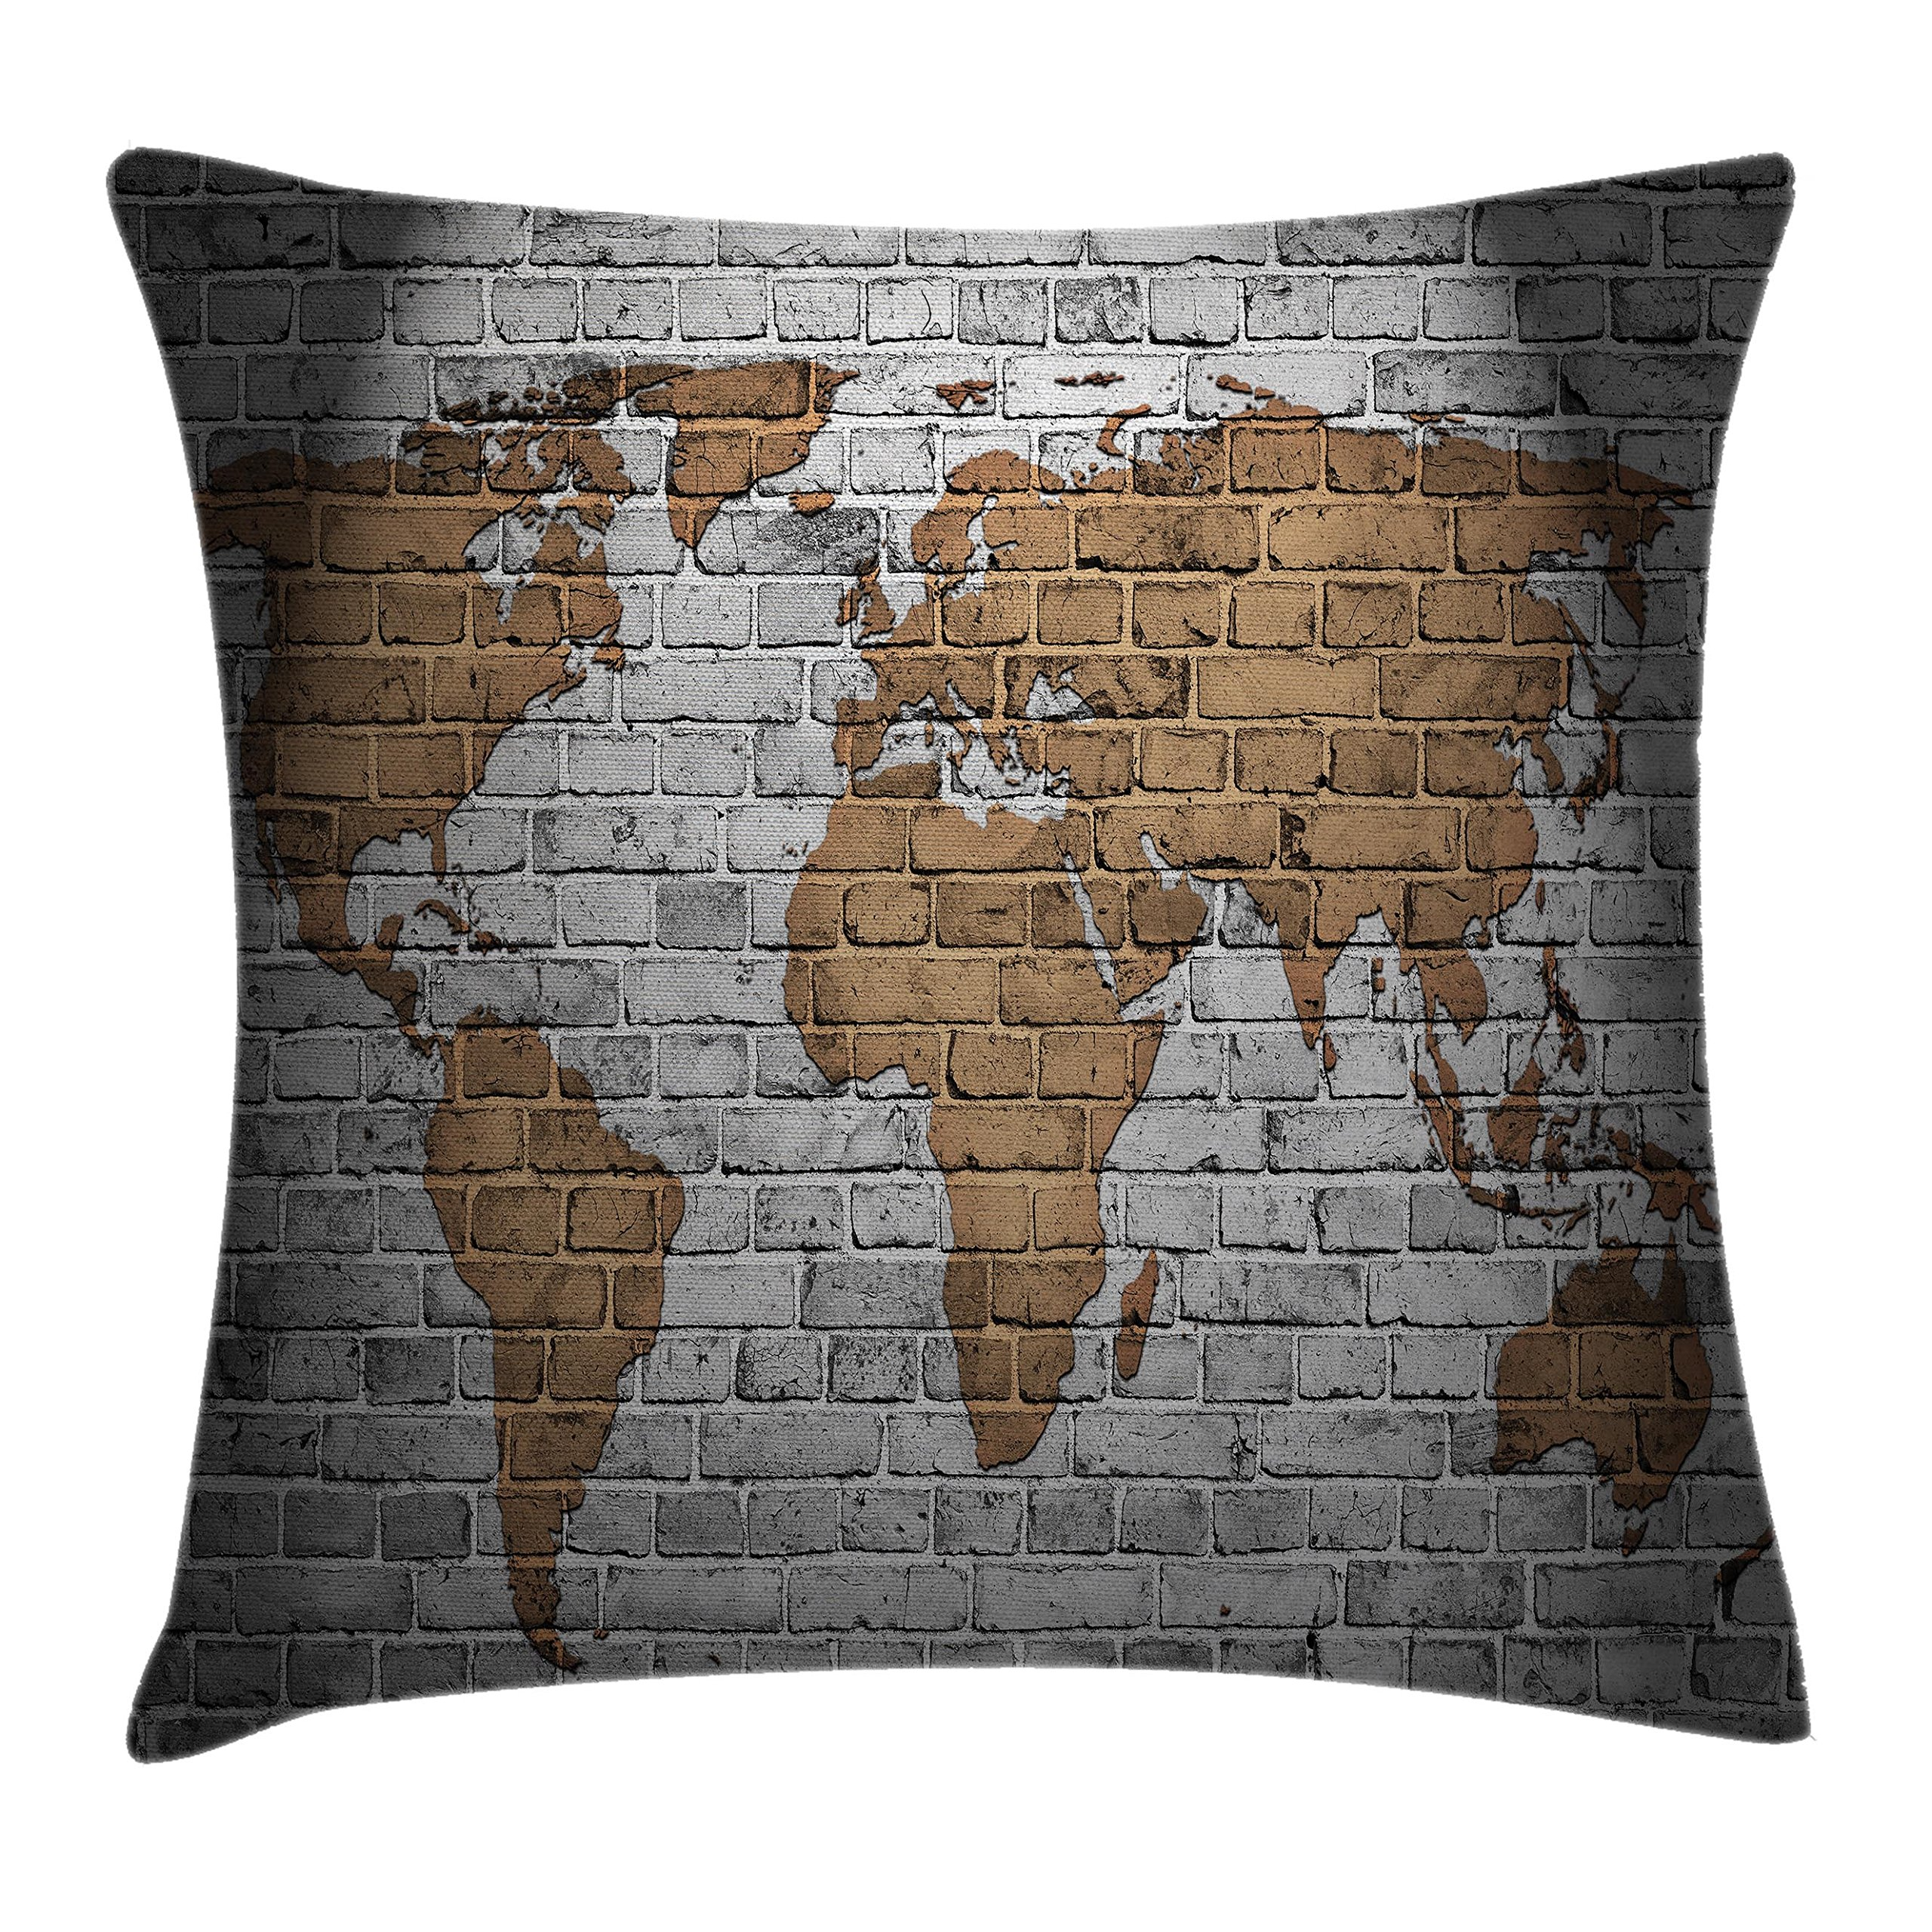 Ambesonne Wanderlust Throw Pillow Cushion Cover, World Map Old Brick Wall Countries Continents Creative Aged Vintage Rough, Decorative Square Accent Pillow Case, 24 X 24 Inches, Brown and Grey